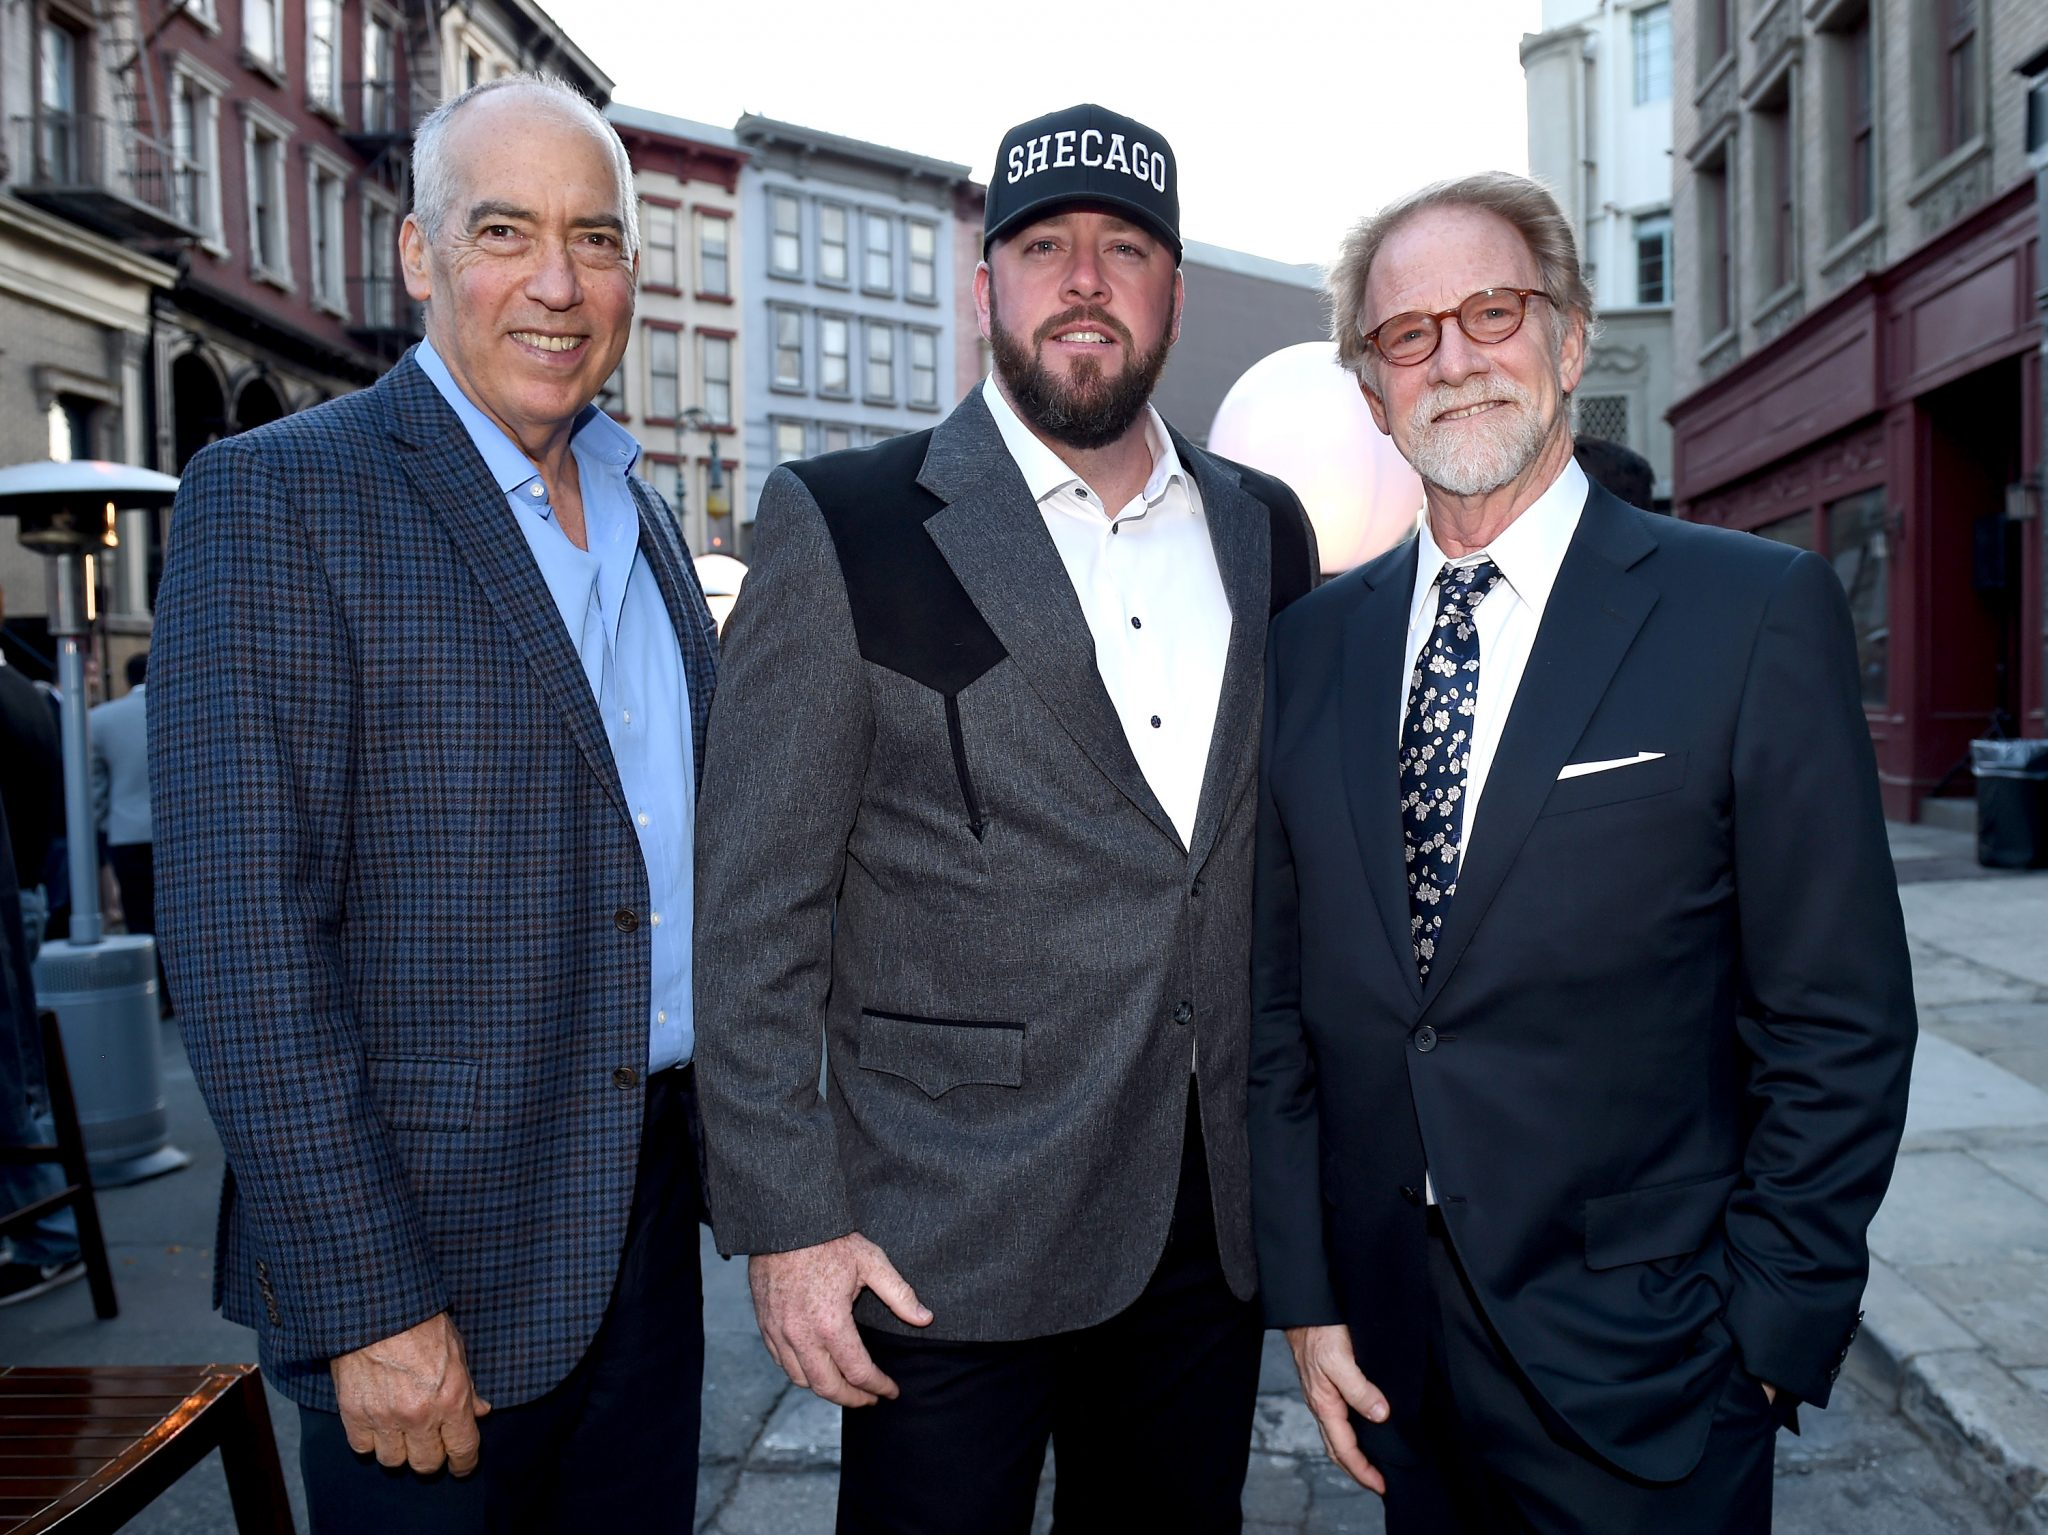 (L-R) Fox Television Group chairman and CEO Gary Newman; actor Chris Sullivan; 20th Century Fox Television Distribution president Mark Kaner attend the Twentieth Century Fox Television Los Angeles Screening Gala at the Fox Studio lot on May 25, 2017 (Photo by Frank Micelotta/Fox/PictureGroup)